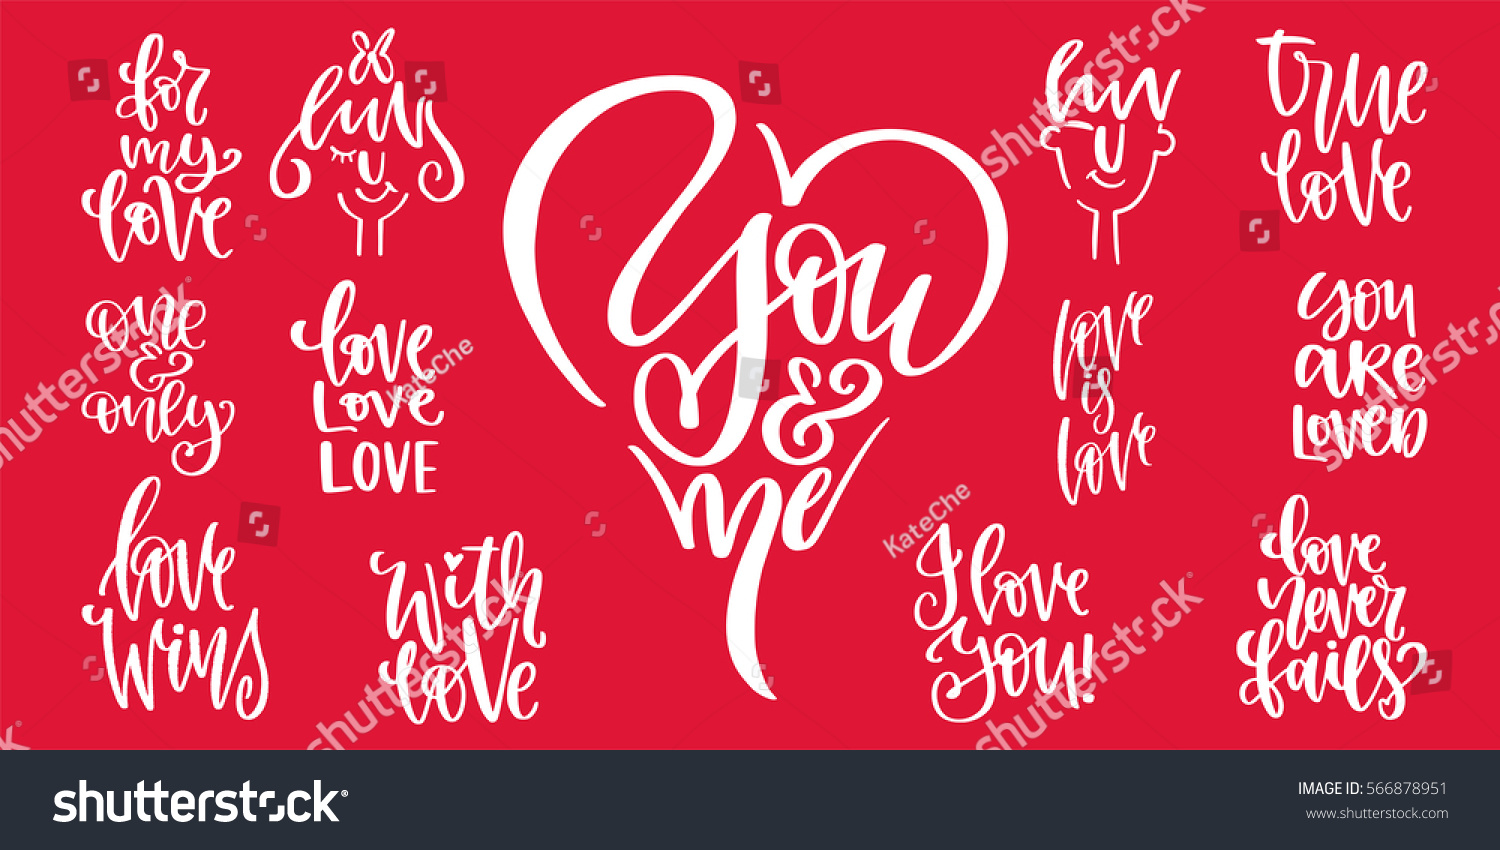 Set Romantic Handwritten Quotes Messages Valentines Stock Vector